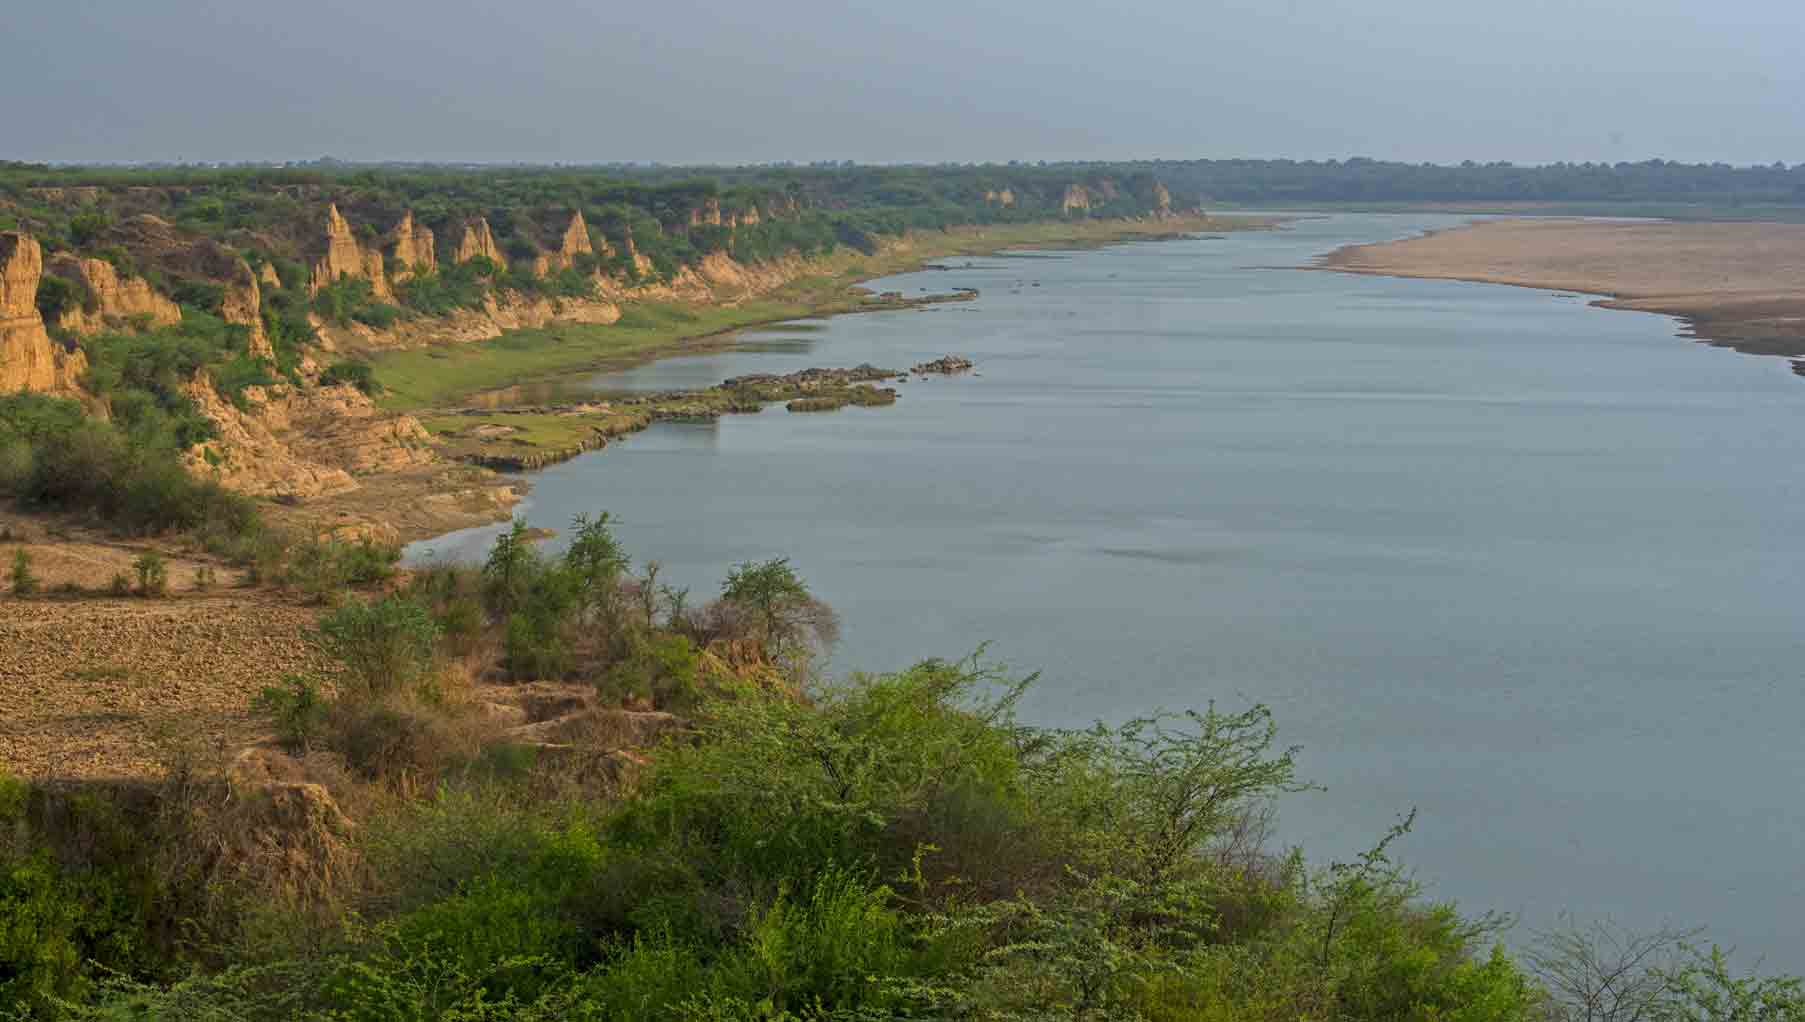 Surrounded by box canyons and dry scrub, India's Chambal River provides critical habitat for a wide variety of wildlife, including several endangered species. (Credit: Dhritiman Mukherjee)